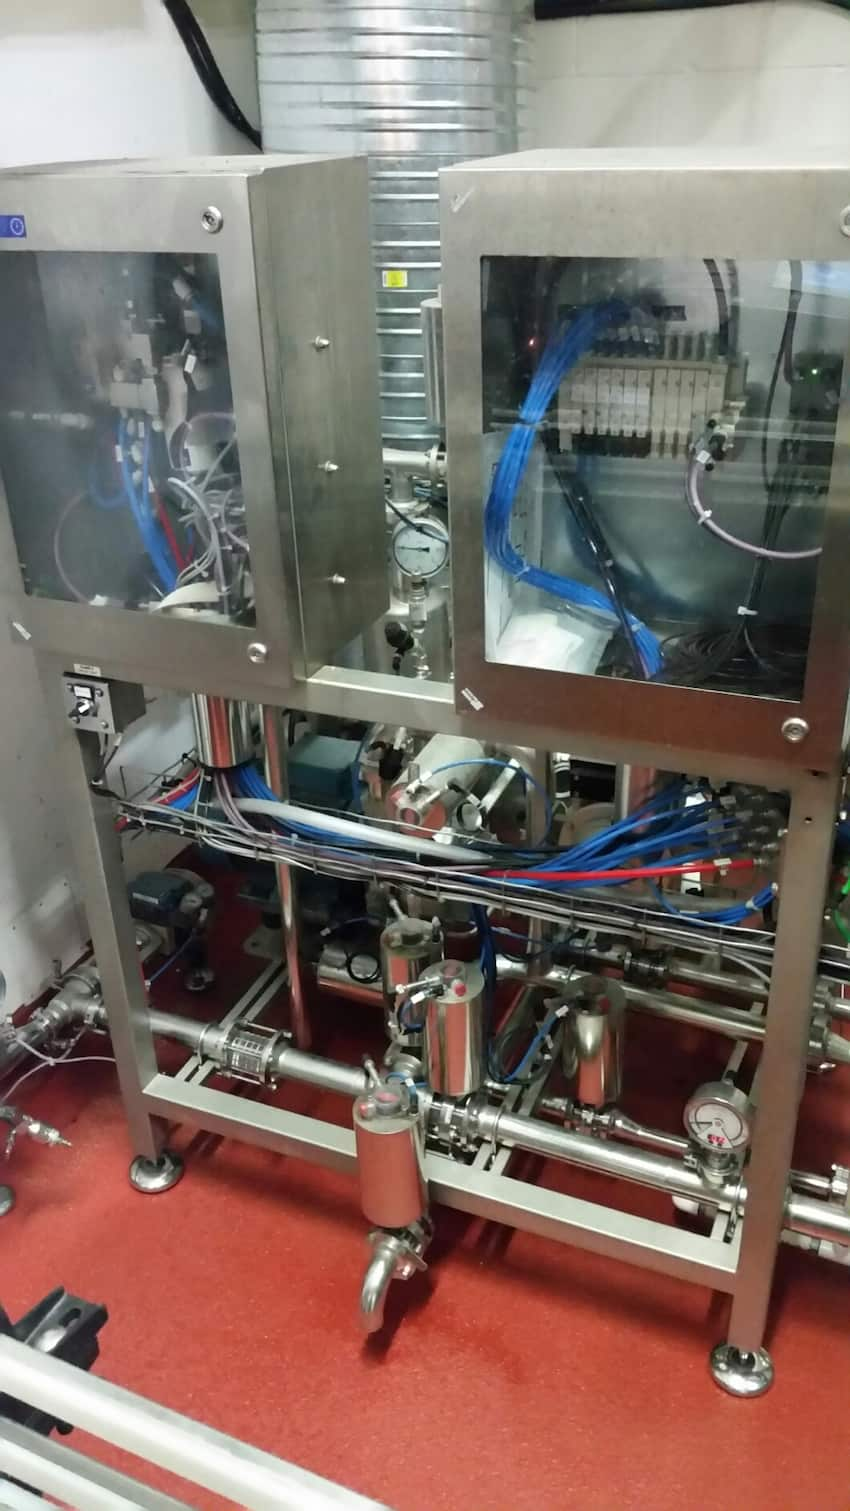 2014 Kosme Tri-Bloc 35-Valve Rotary Beer, Carbonated & Non-Carbonated Filler, Model Barifill G 1200-35-35-7, S/N F01828, 35-Station Bottle Rinser, Model Jetclean-1200-35-126, 7-Head Crown Cork Capper, Model Capper1-KK-240-7-108, Capable of 1,200 BPH Filling Speed, Previously Filling 341 ML @ 200 BPM & 650 ML @ 170 BPM with Long Neck Glass Bottles, Carbonation 5.5 G CO2/L, Fill Temp 2-4 Degrees C, Metal Crown Closure, Capable of Glass or Plastic Containers, 460 V / 265 V (Kosme Manual Available Upon Request)